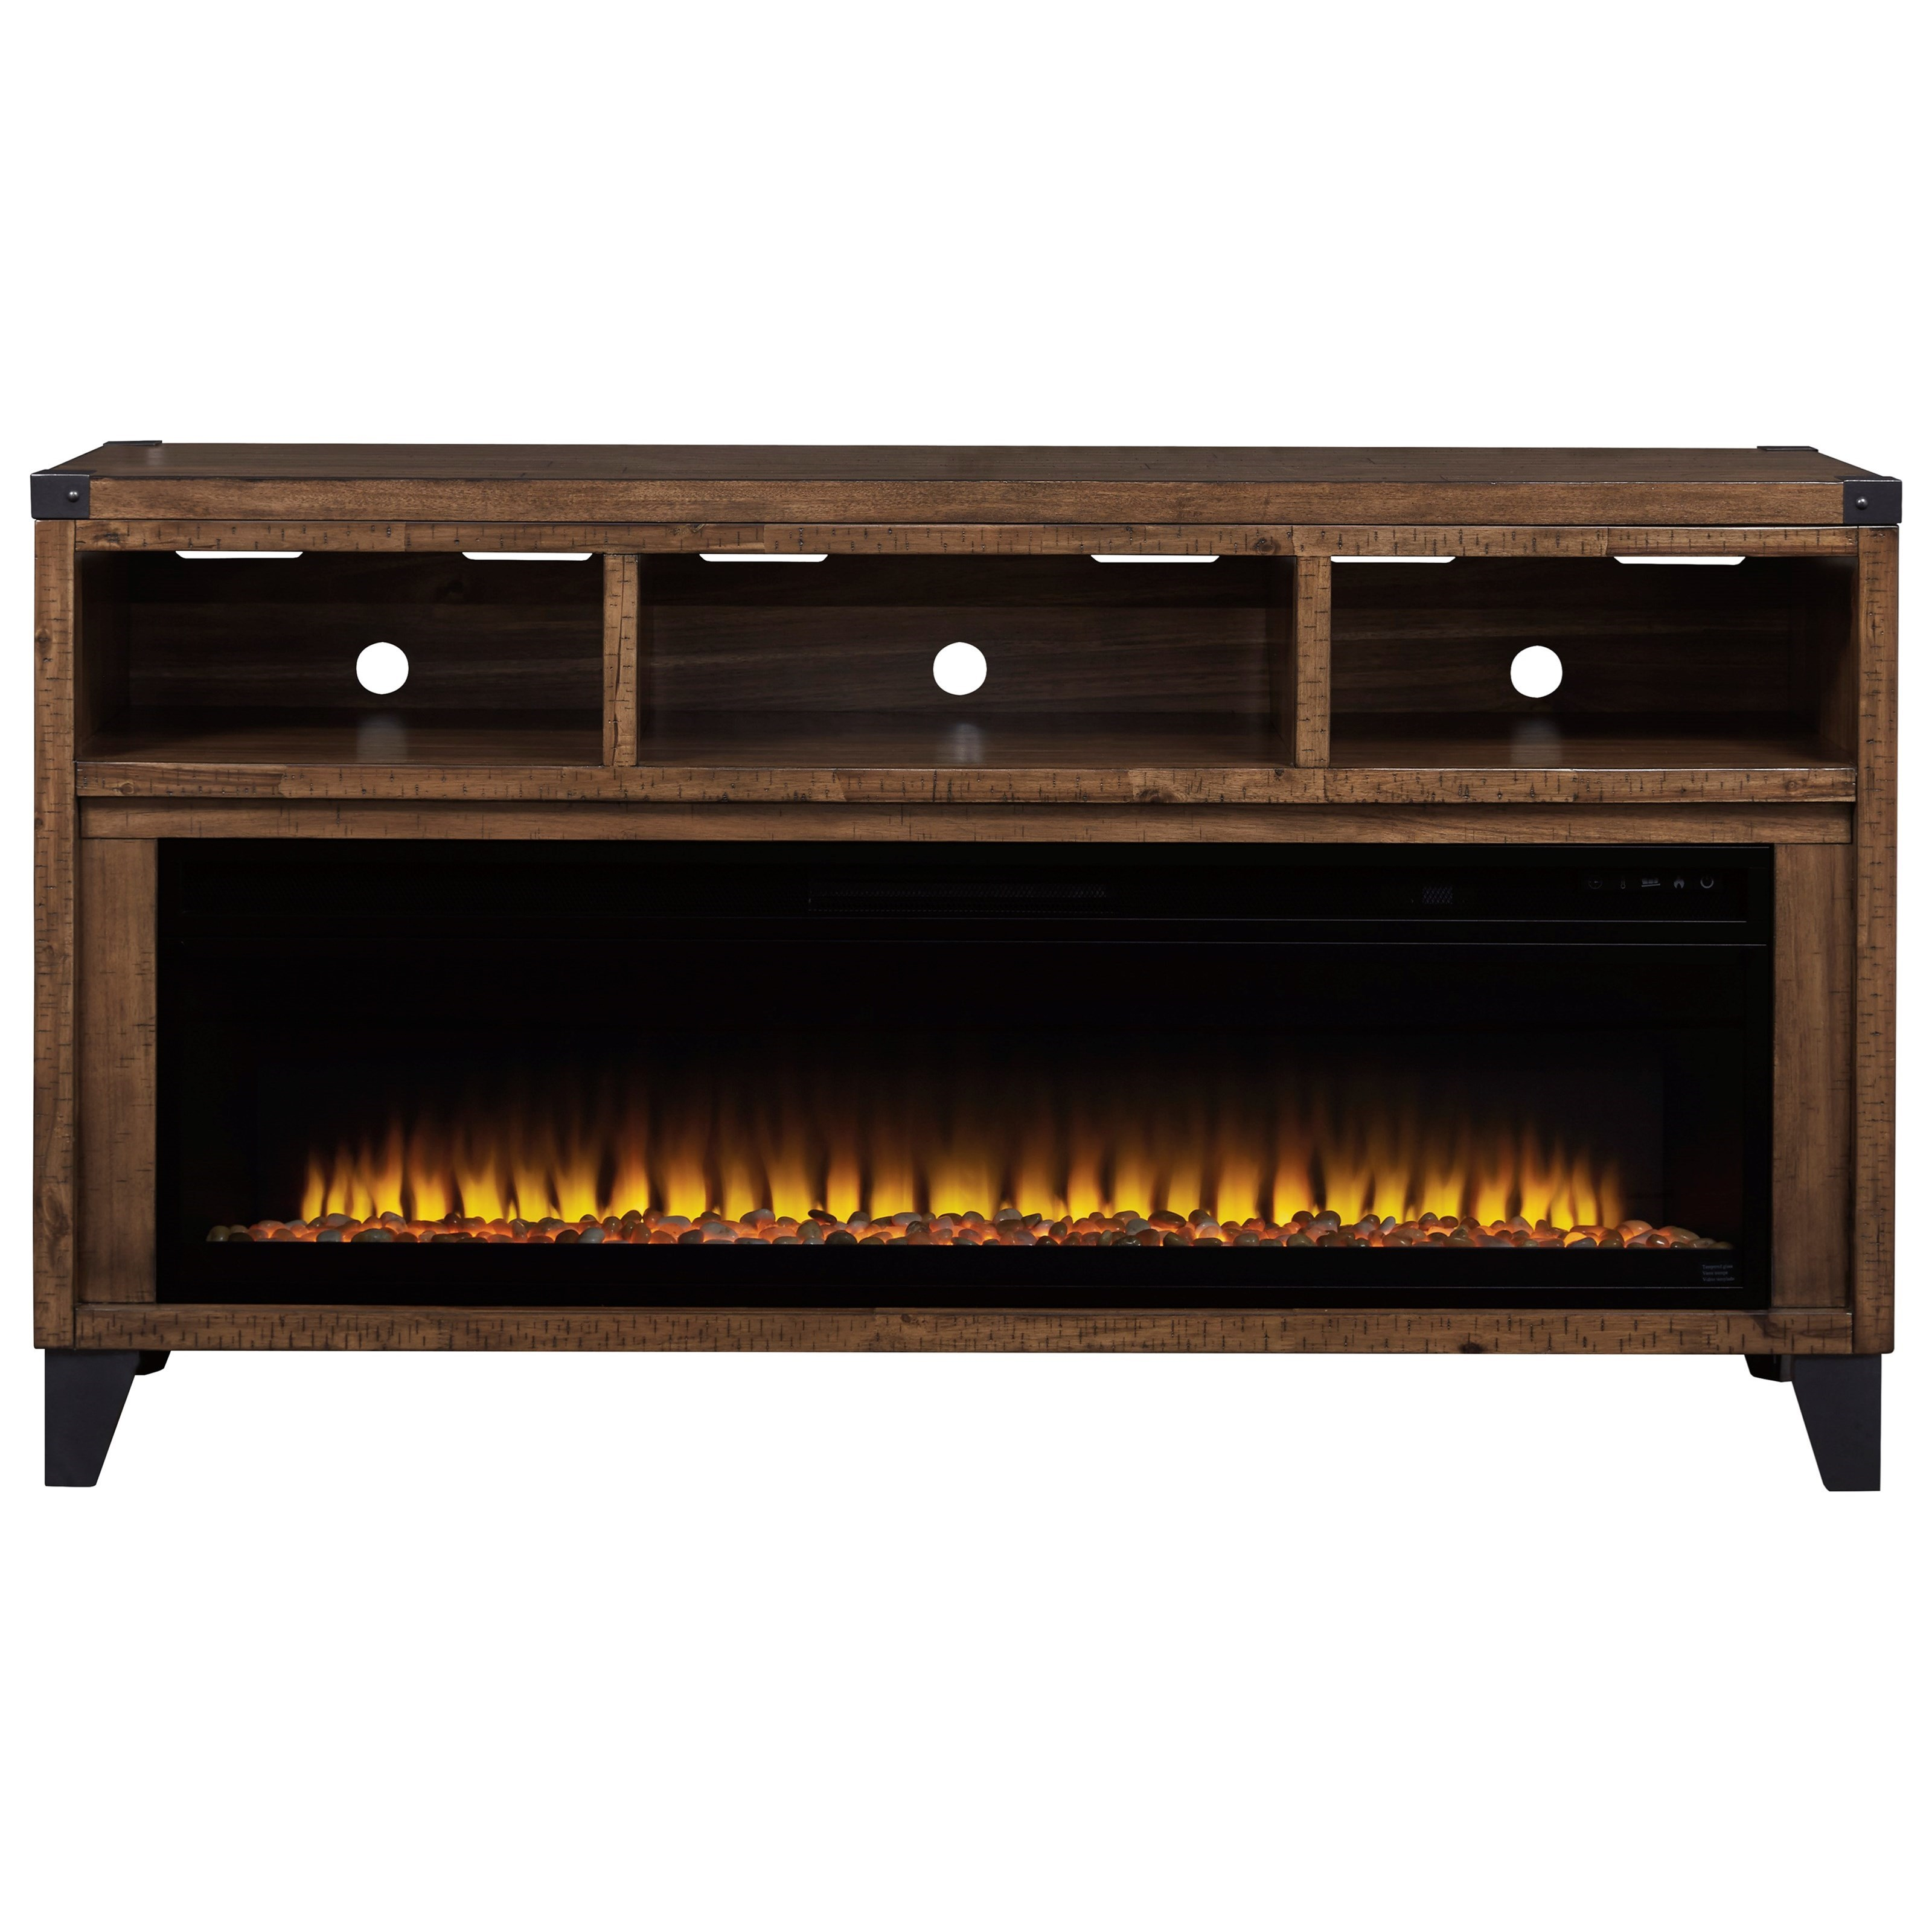 Raffia Large TV Stand w/ Fireplace Insert at Rotmans